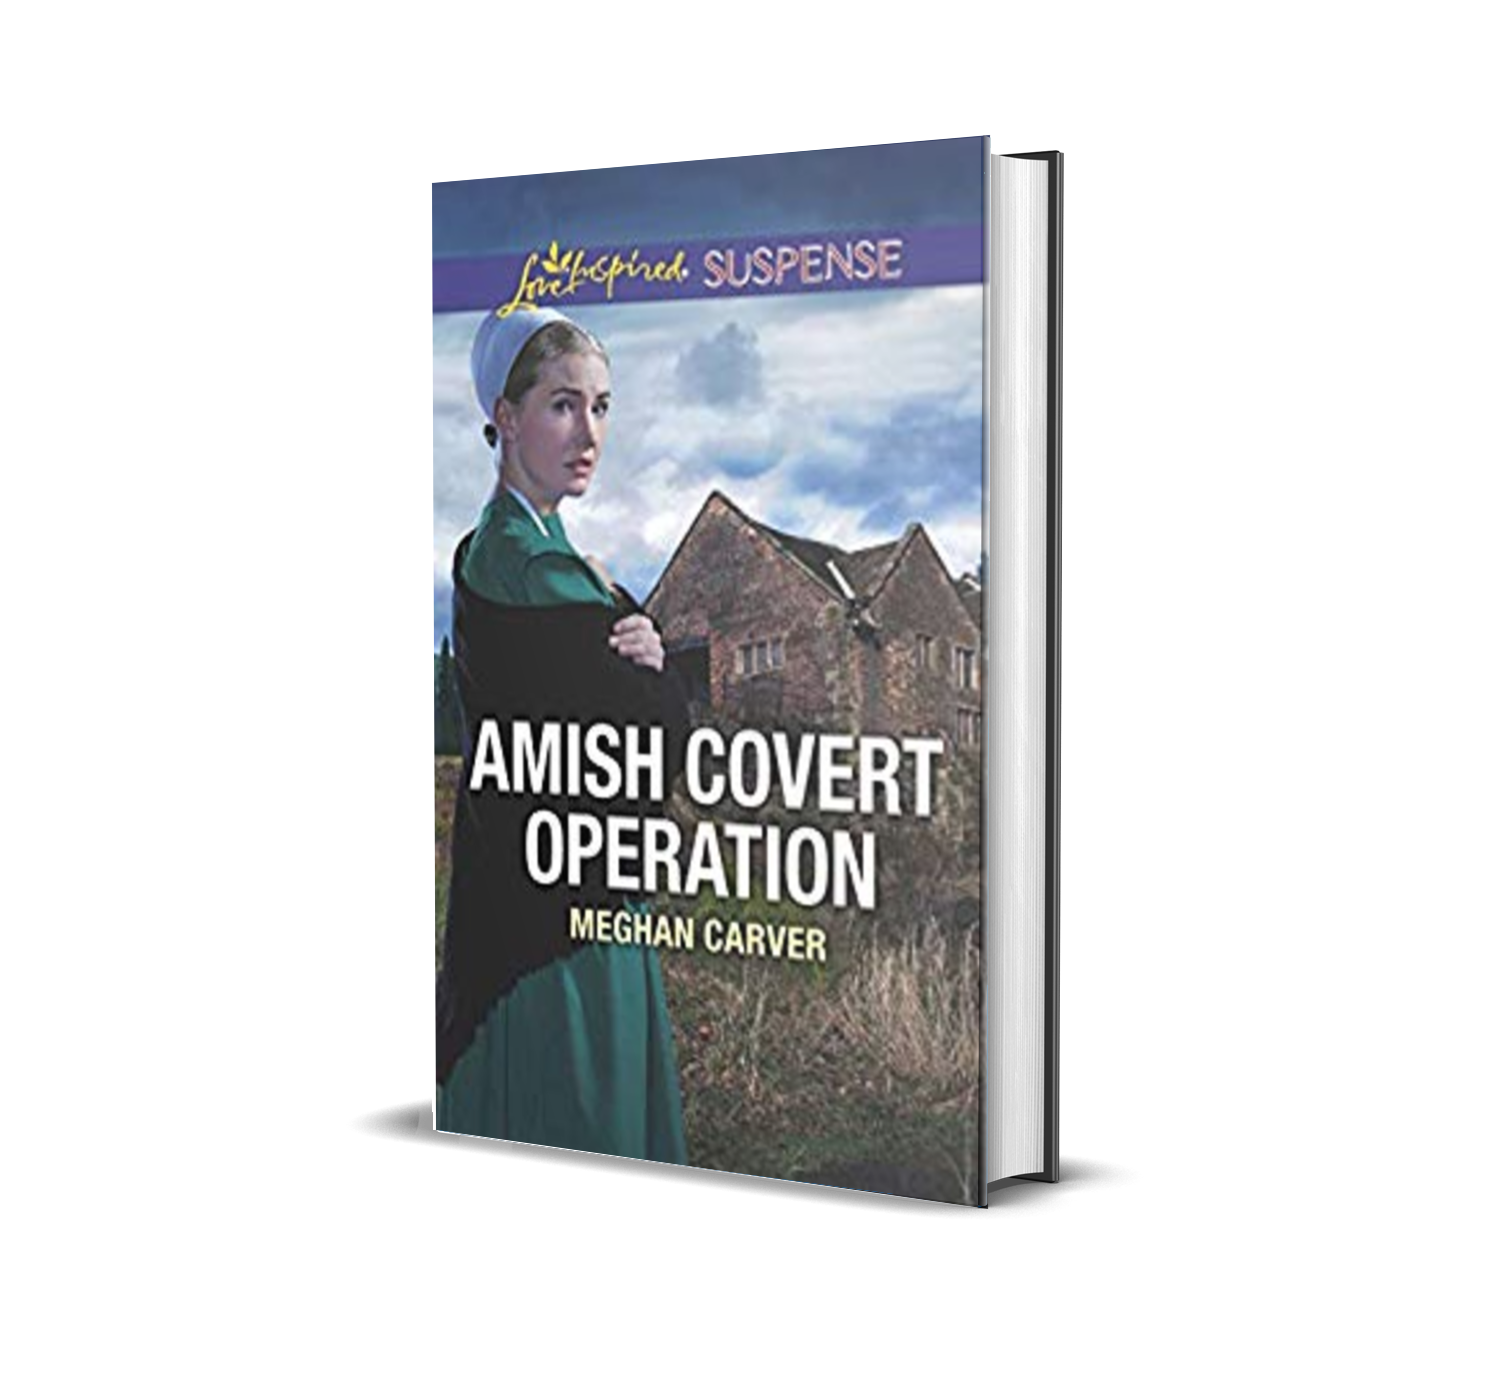 Amish Covert Operation by Meghan Carver